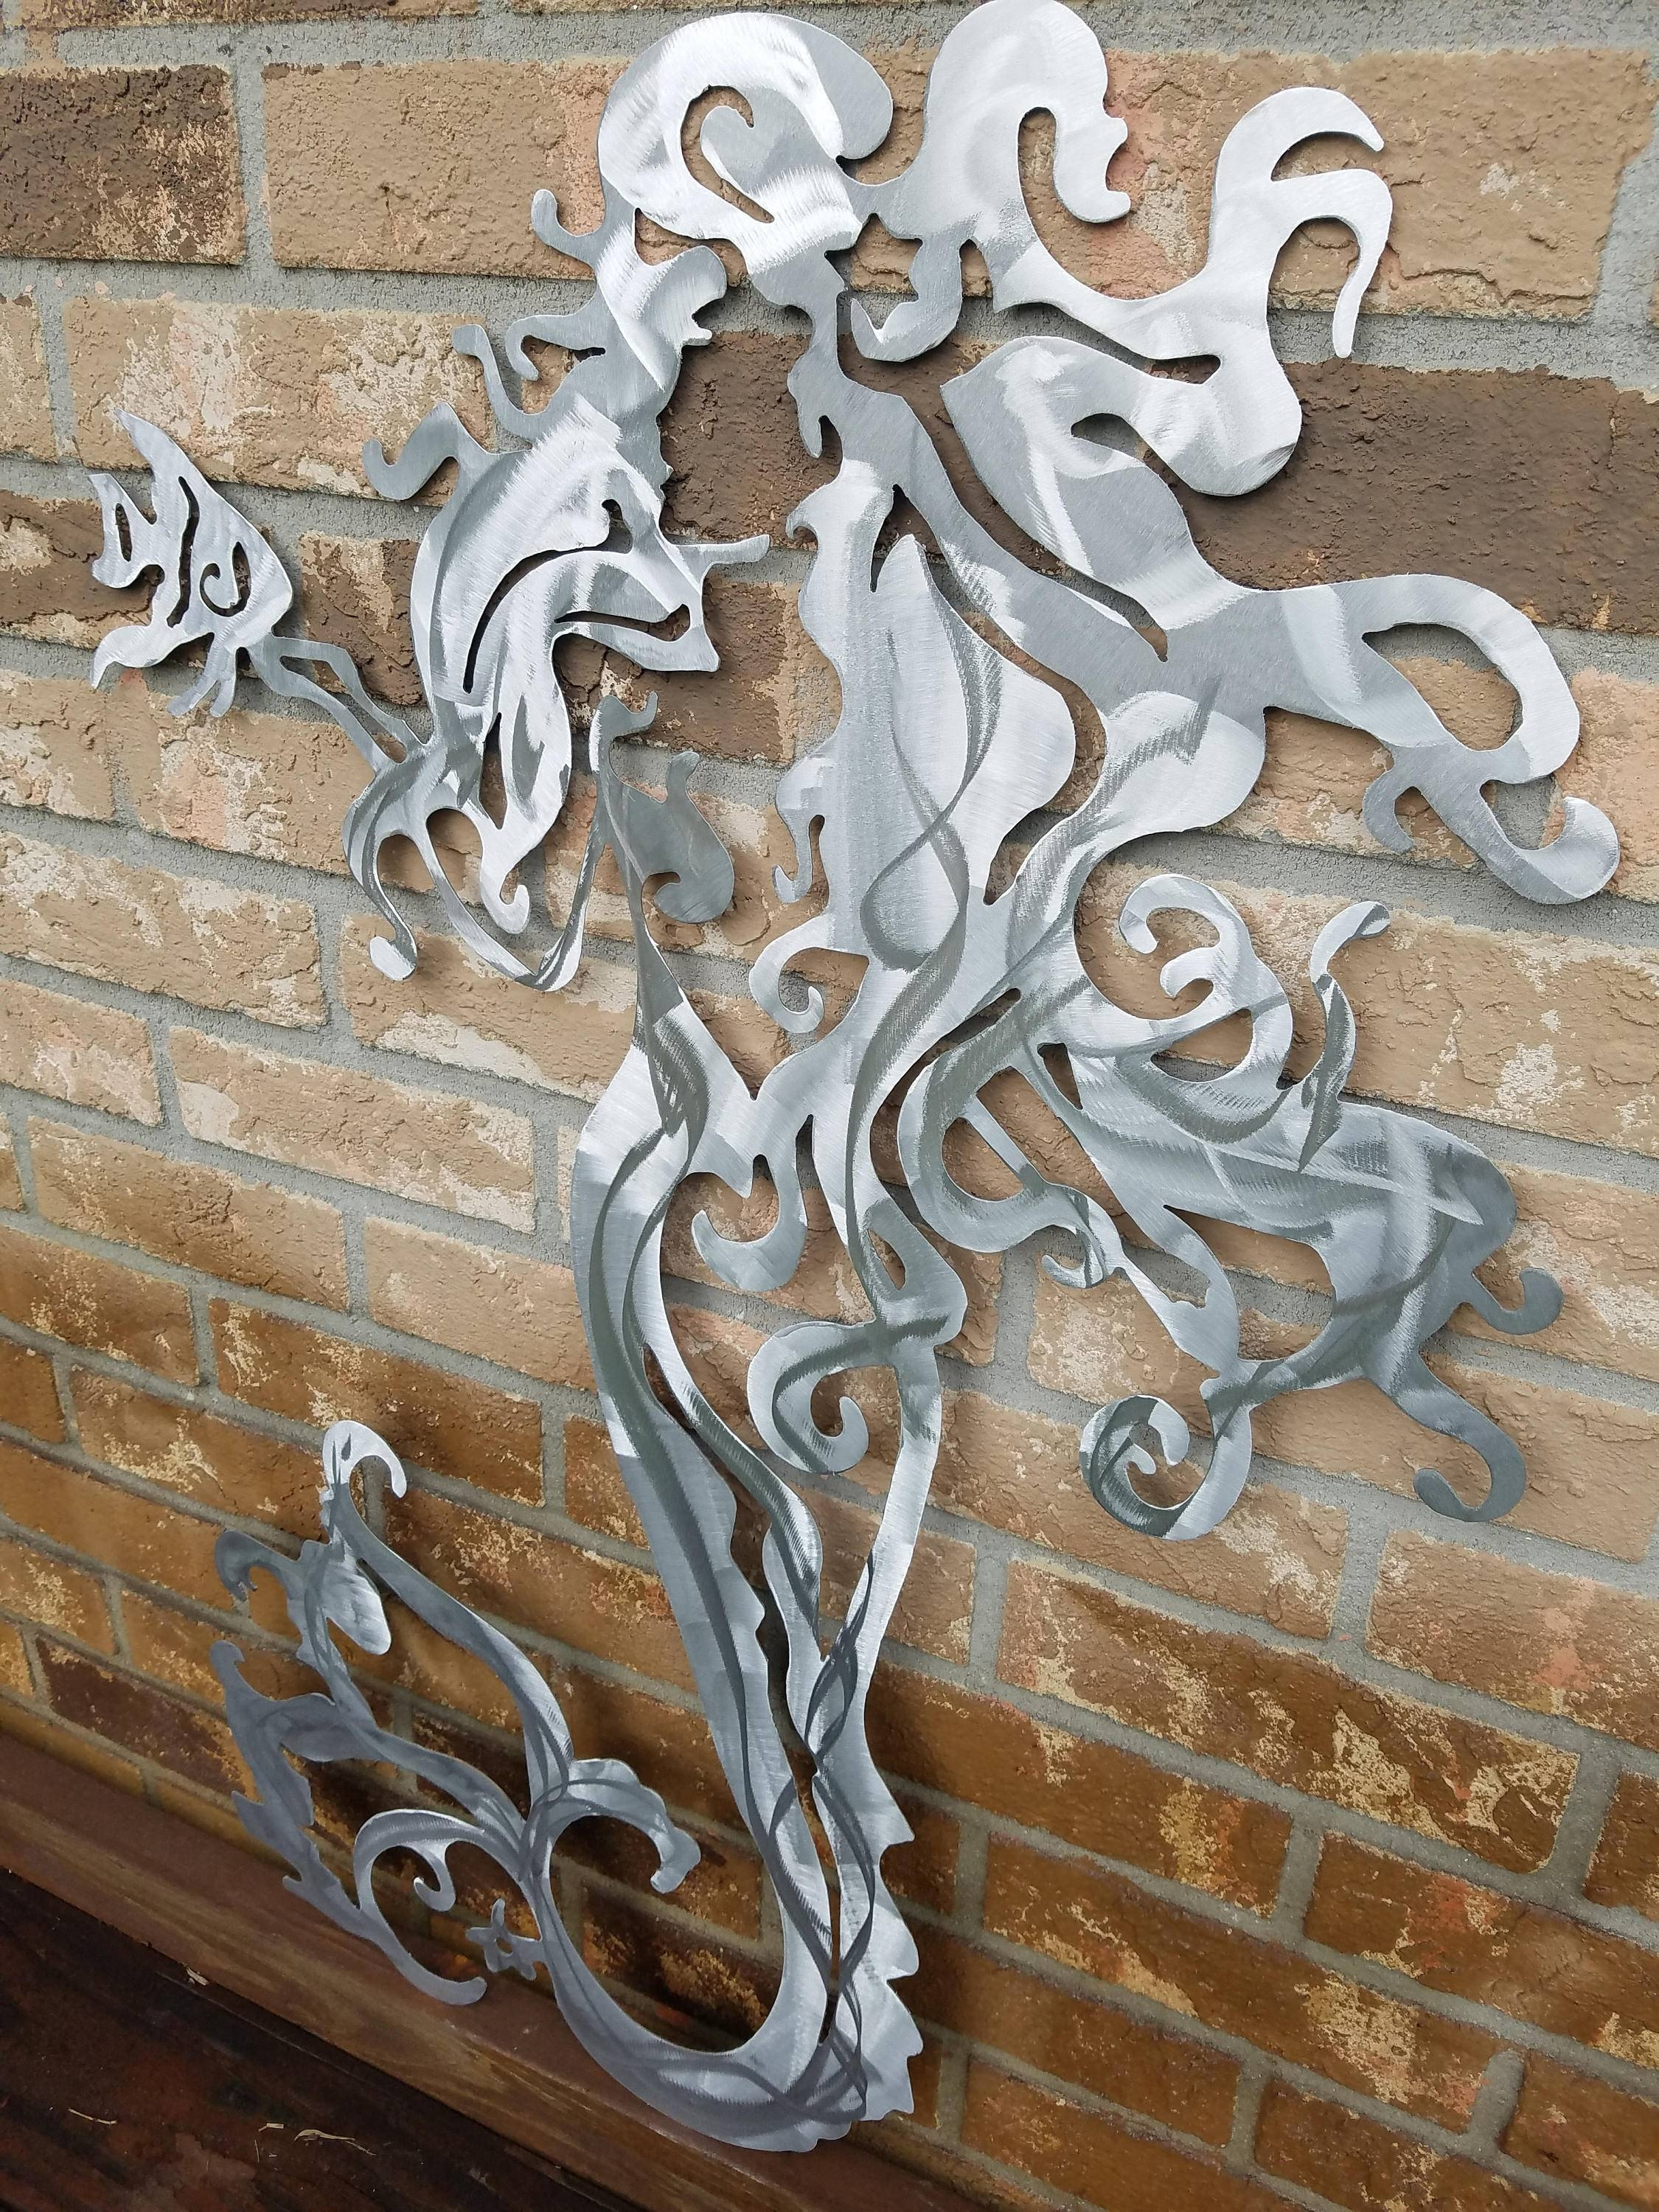 Mermaid Metal Wall Art, Aluminum Mermaid, Metal Mermaid, Fish Pertaining To Current Mermaid Metal Wall Art (View 13 of 20)